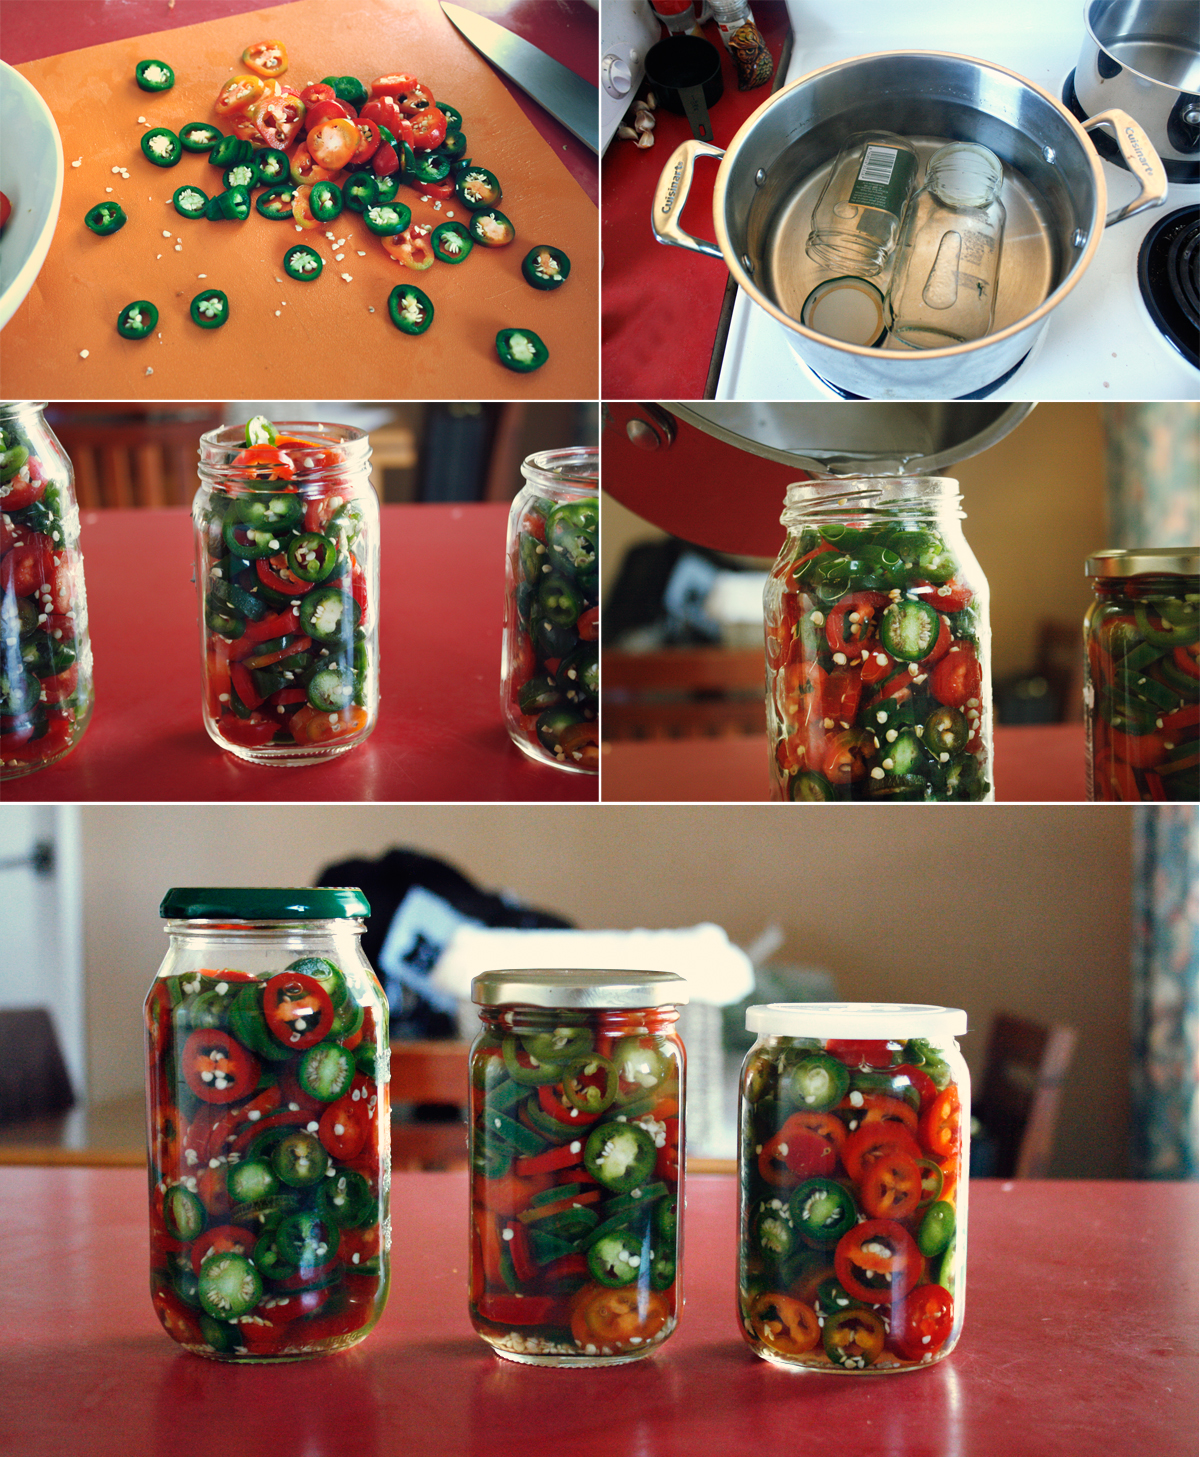 How To: Pickle Your Own Jalapenos